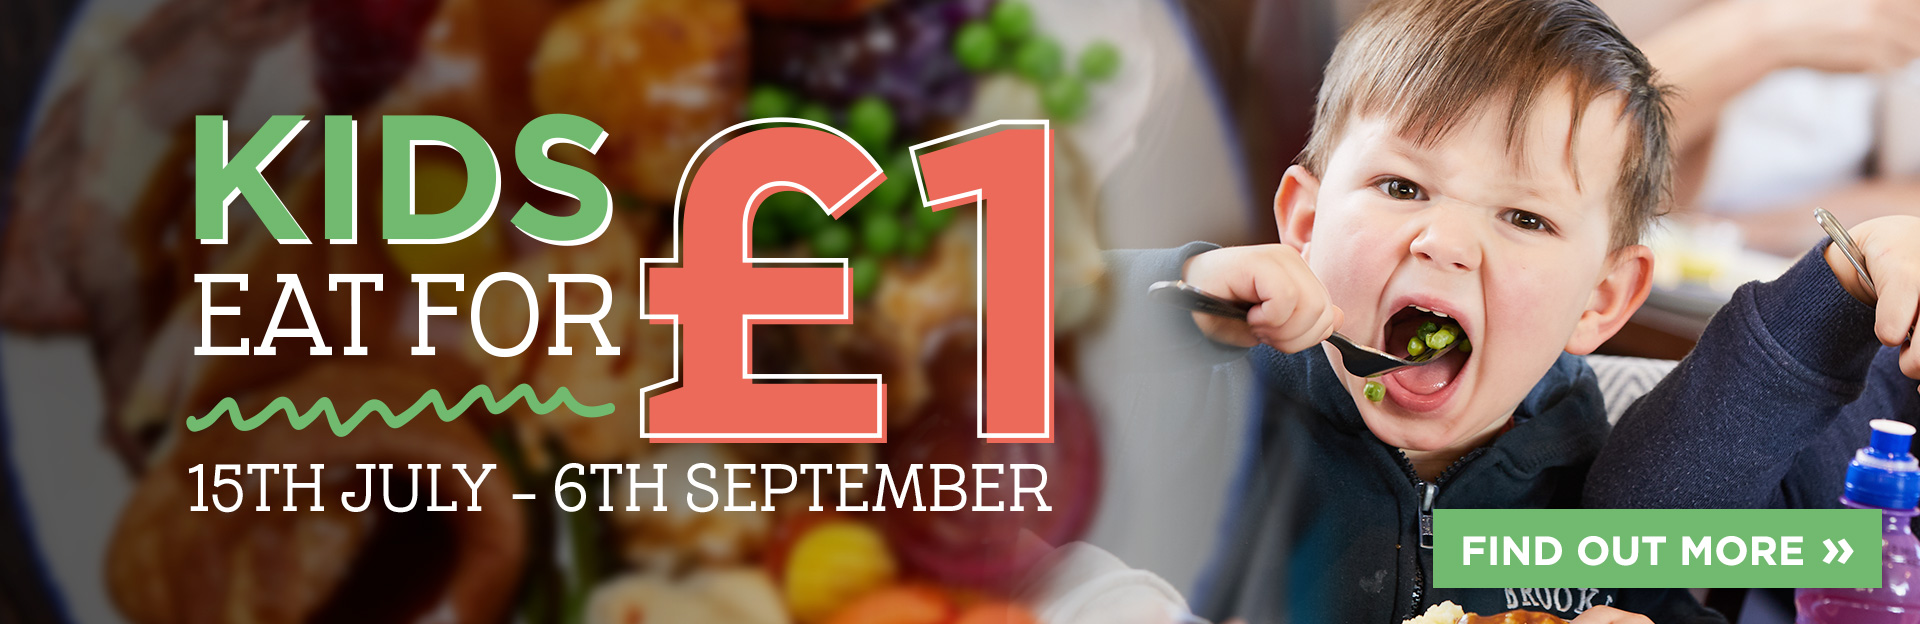 Kids Eat for £1 at The Green Tree Inn